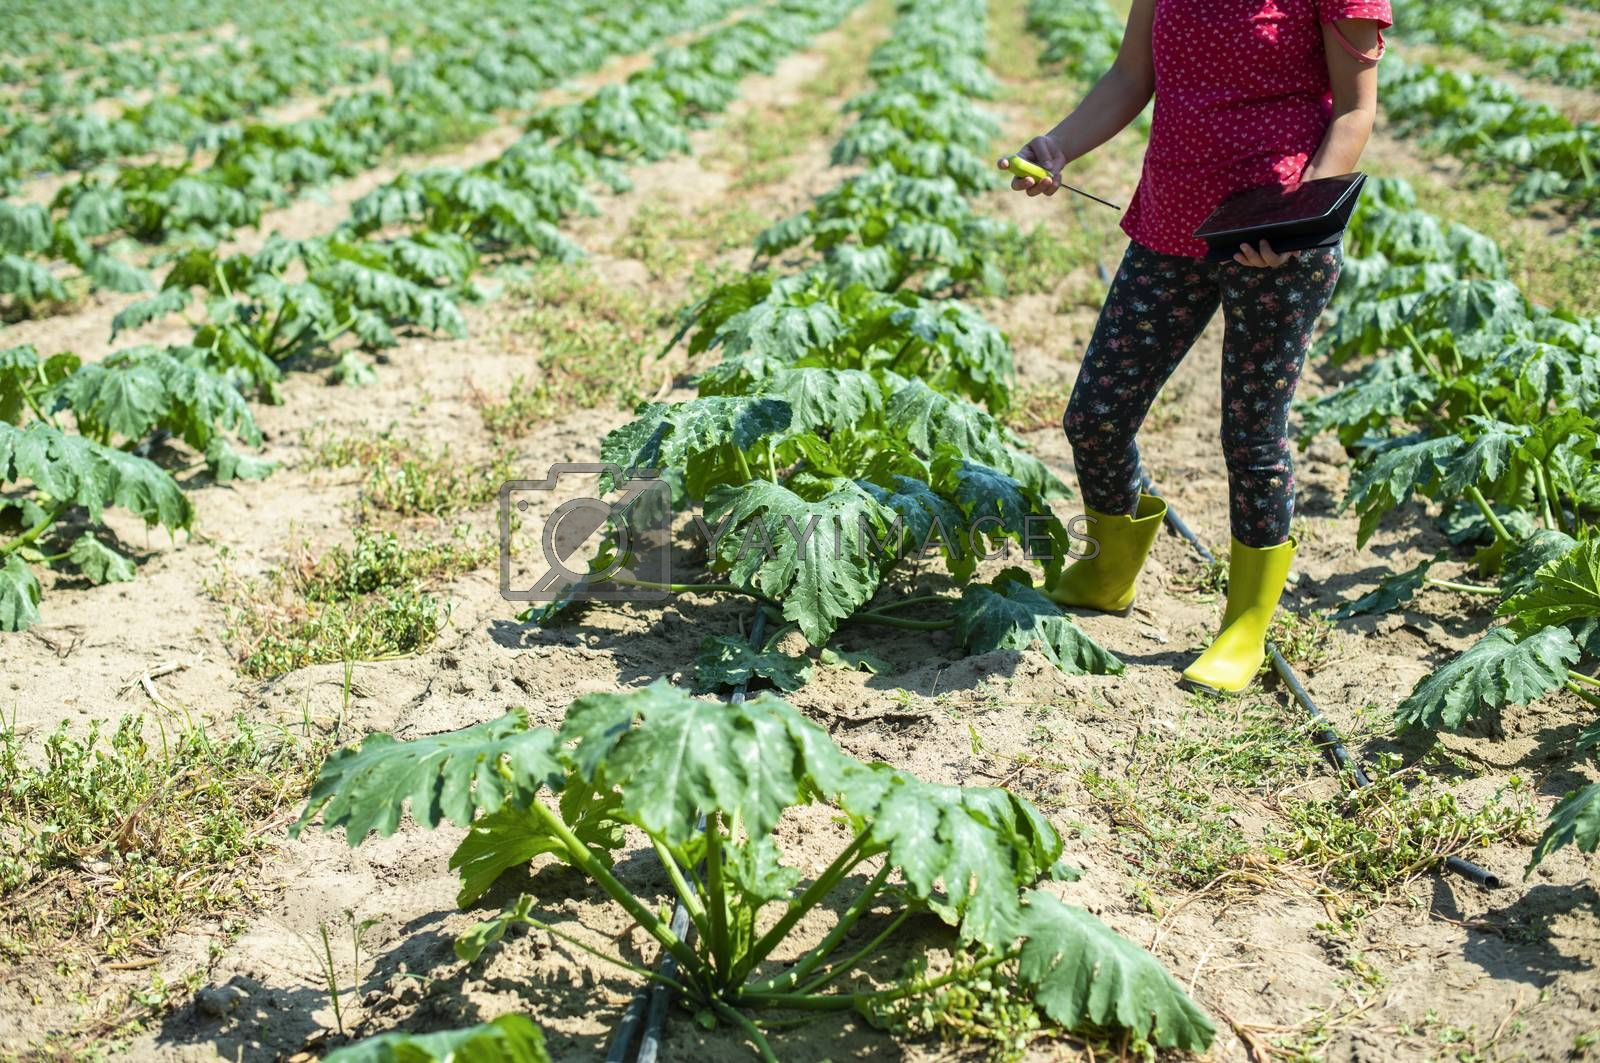 Farmer measure soil in Zucchini plantation. Soil measure device and tablet. New technology in agriculture concept.